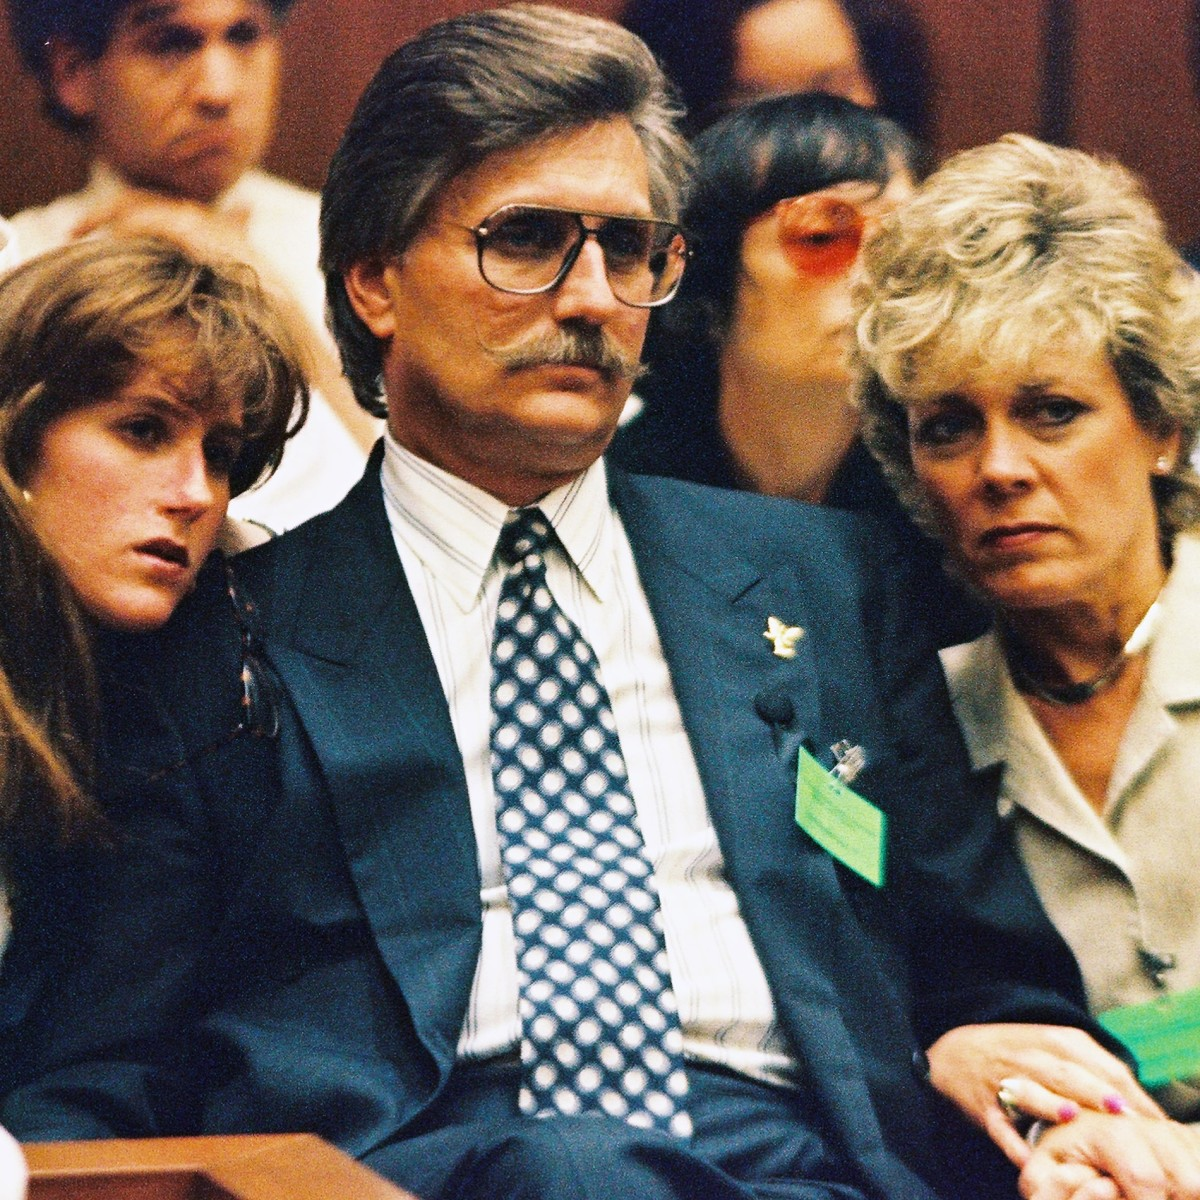 Fred Goldman and Family photo via Getty Images